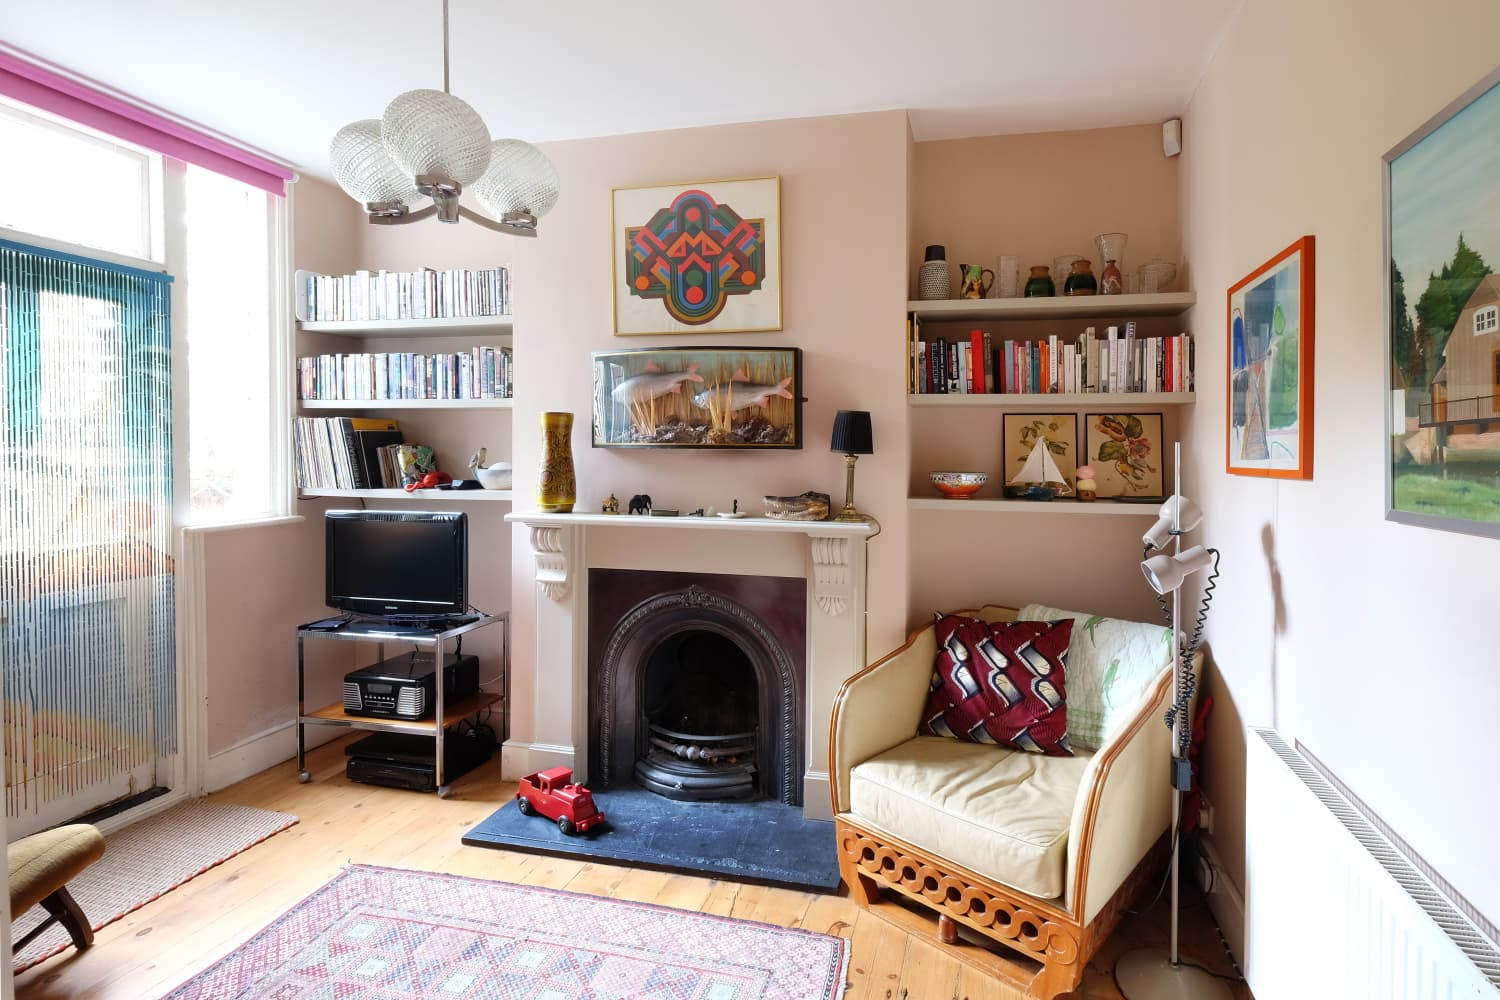 70s-Inspired Style in South East London